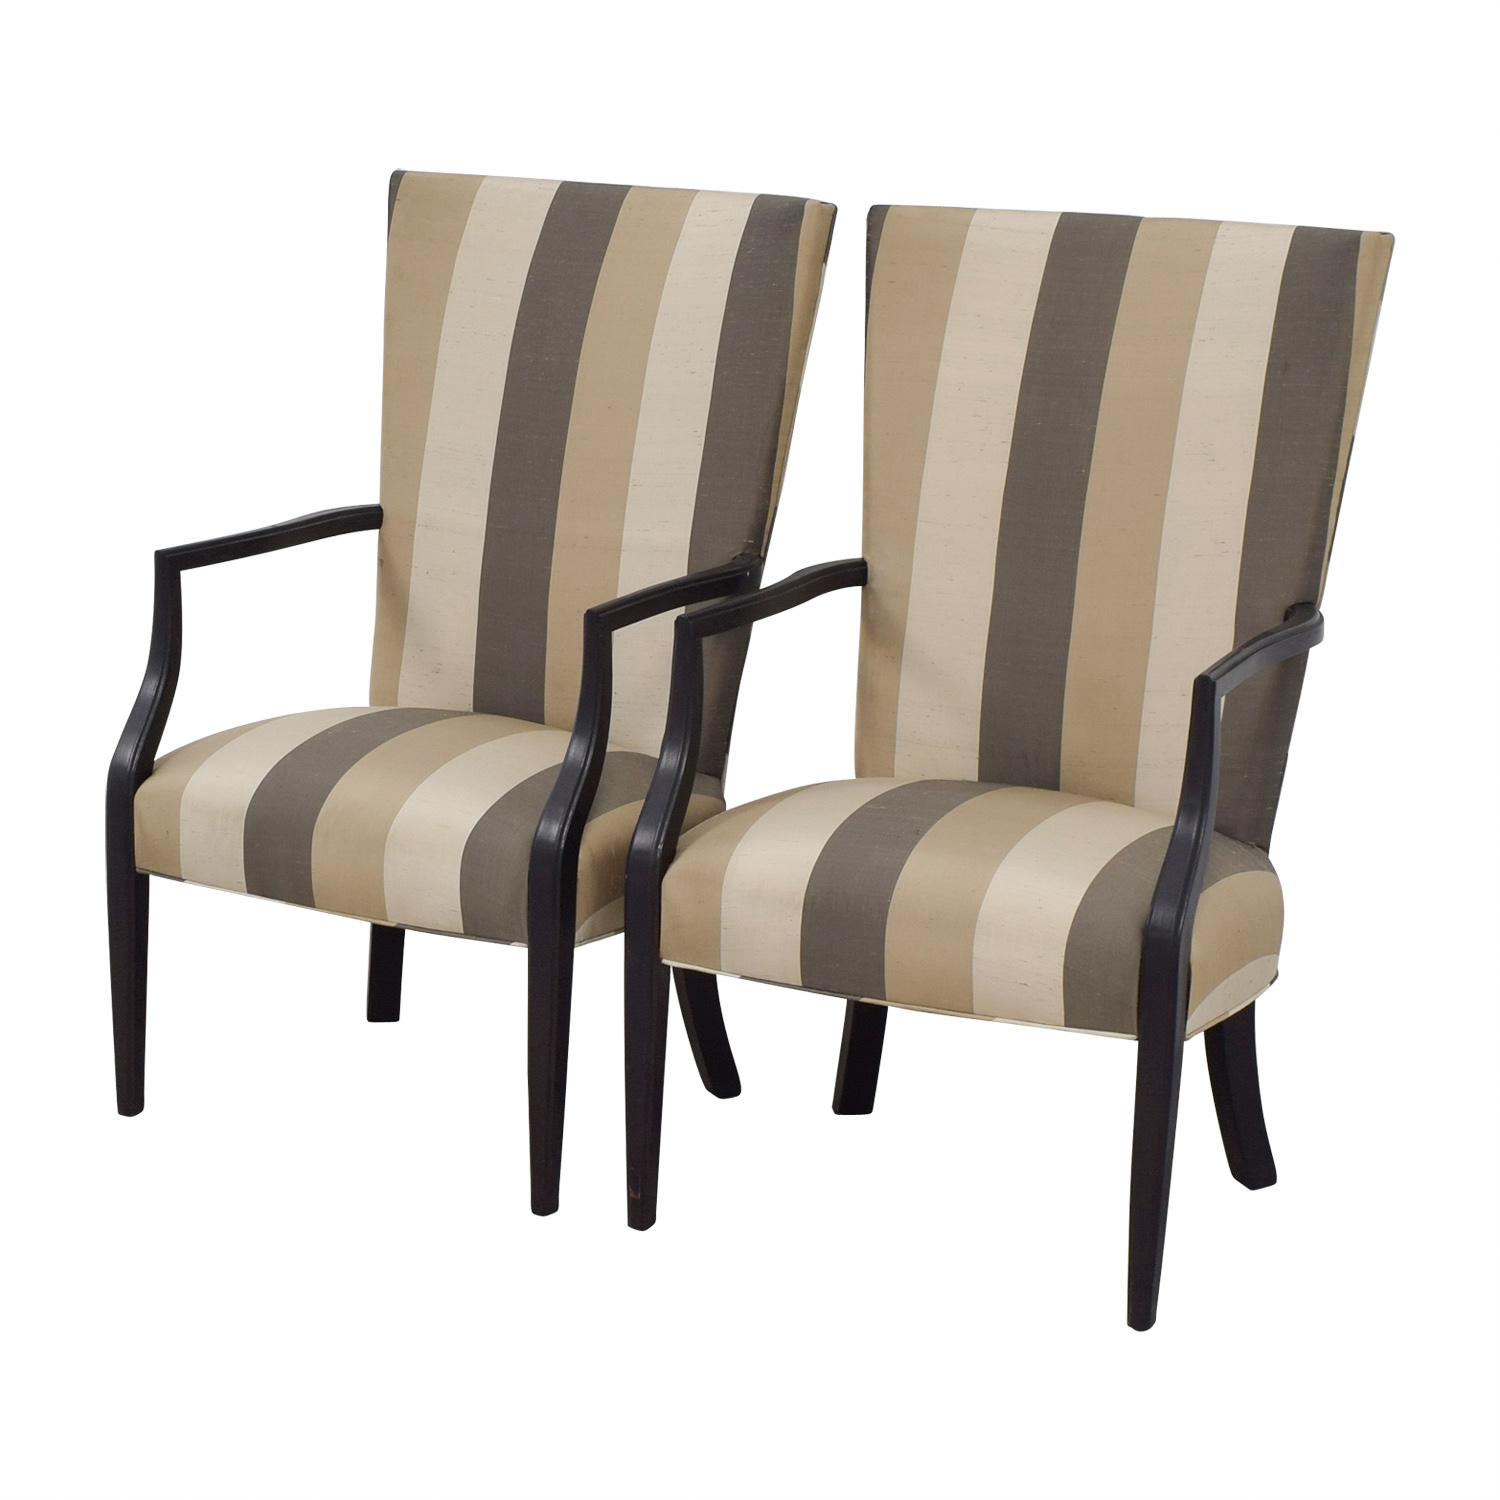 Hickory Chair Furniture Co Vintage Neutral Stripe Chairs